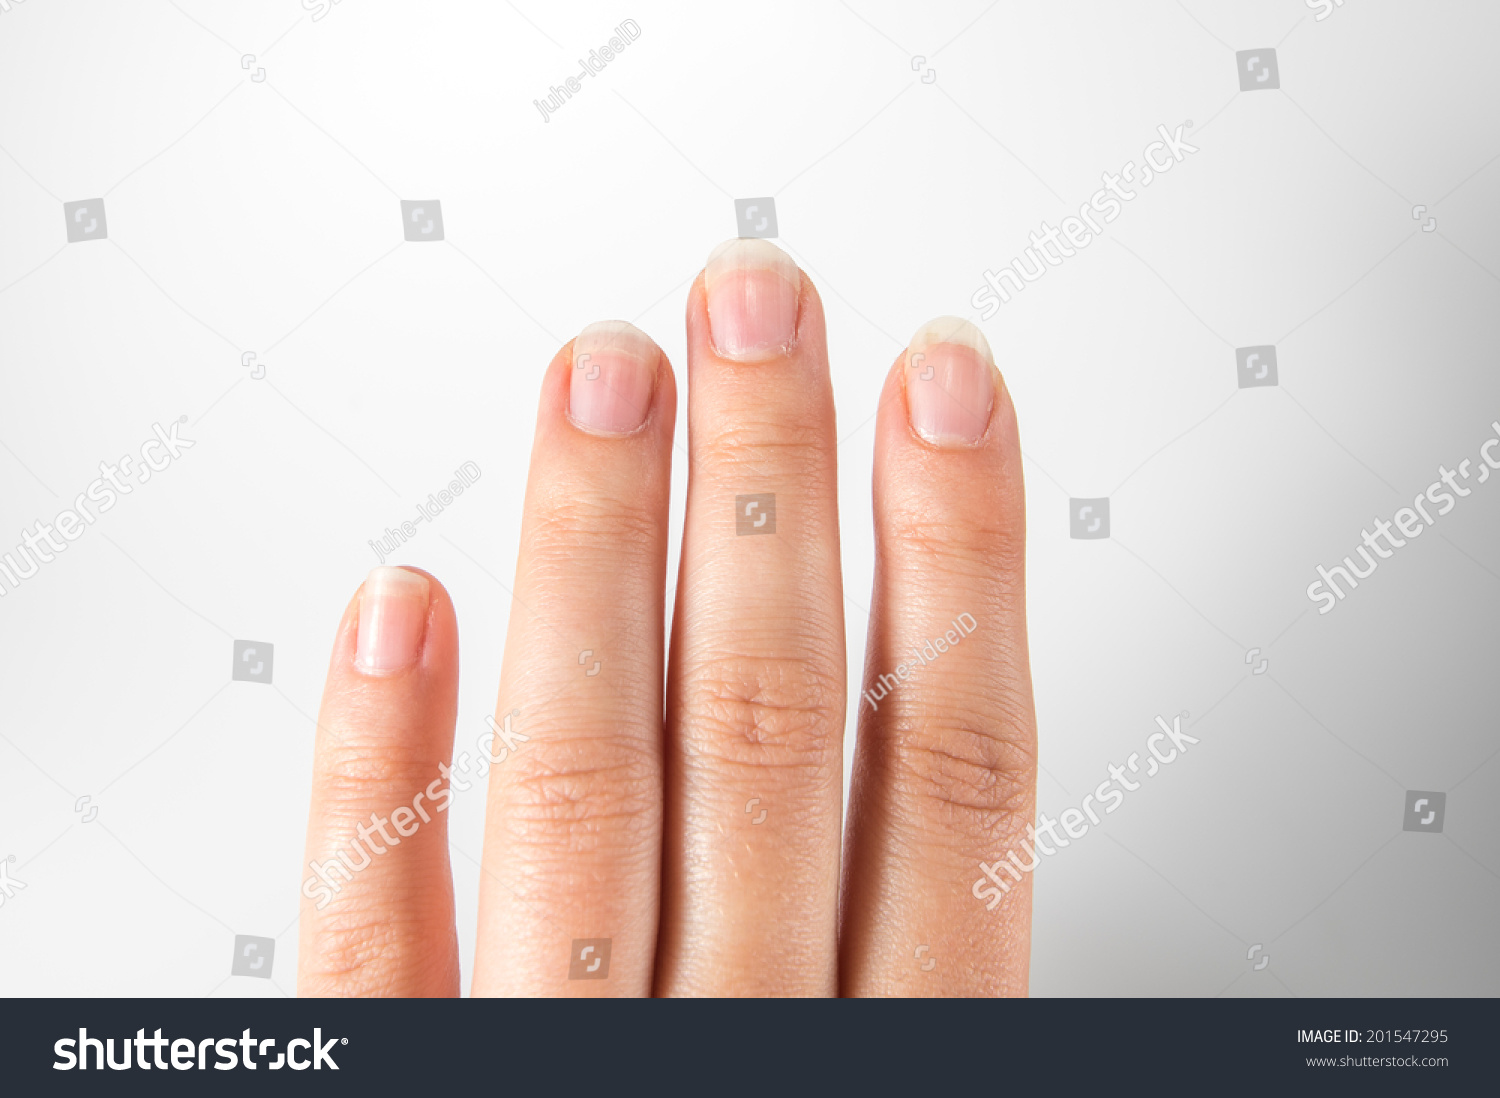 Natural Nails Unvarnished Long Fingers Stock Photo (Download Now ...